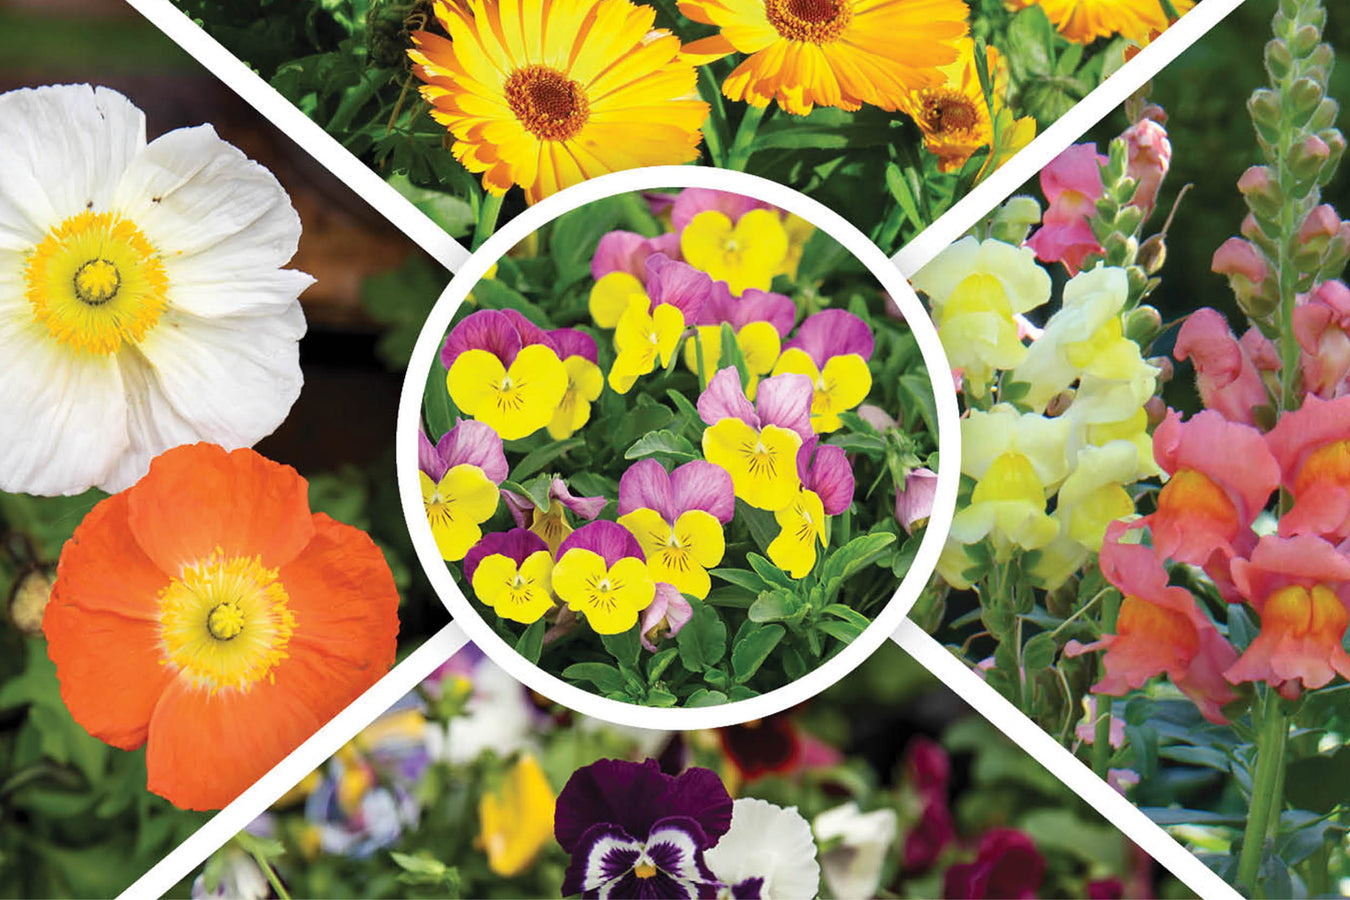 Cool Annuals on Hot Buy